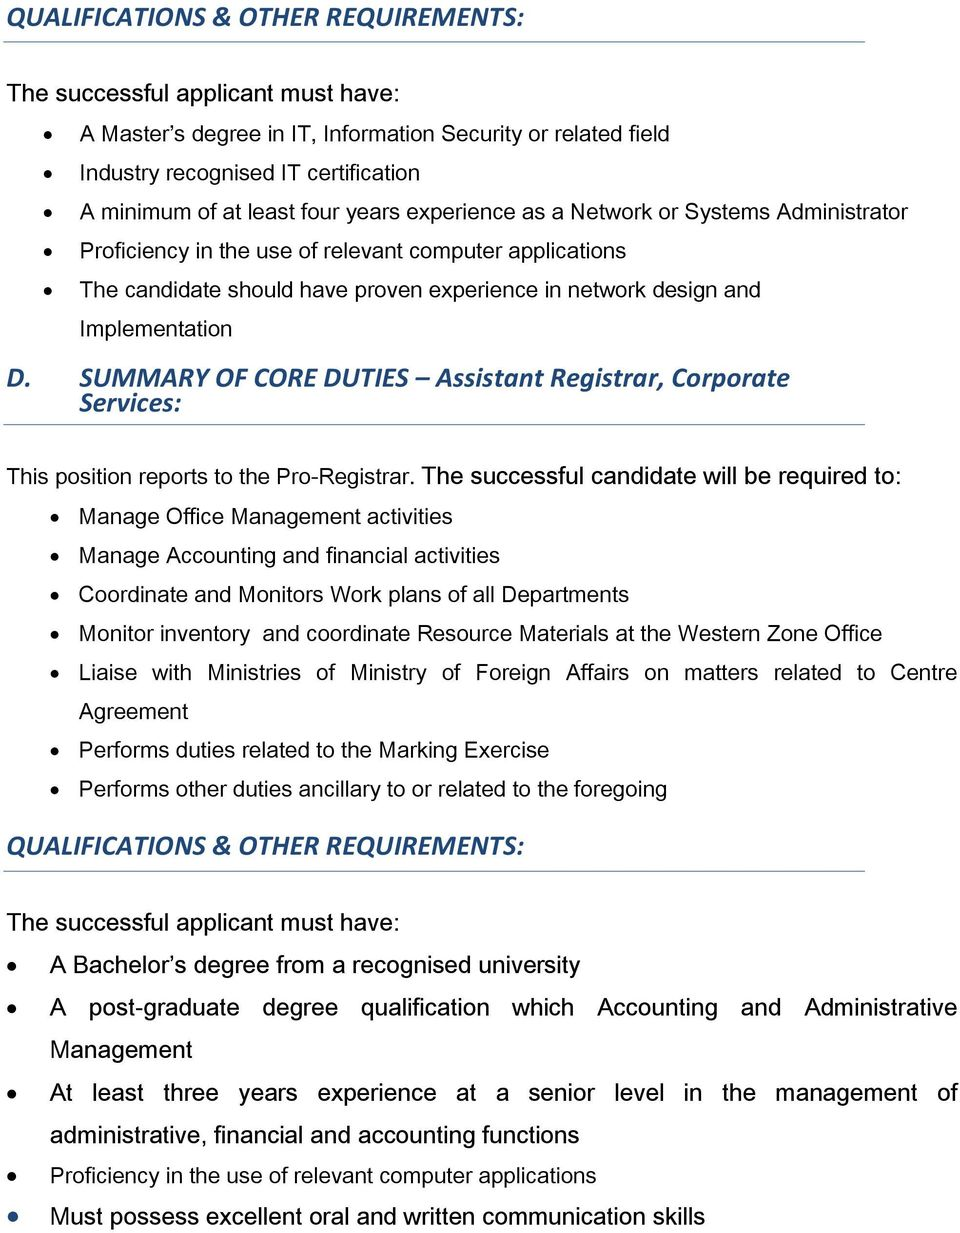 SUMMARY OF CORE DUTIES Assistant Registrar, Corporate Services: This position reports to the Pro-Registrar.